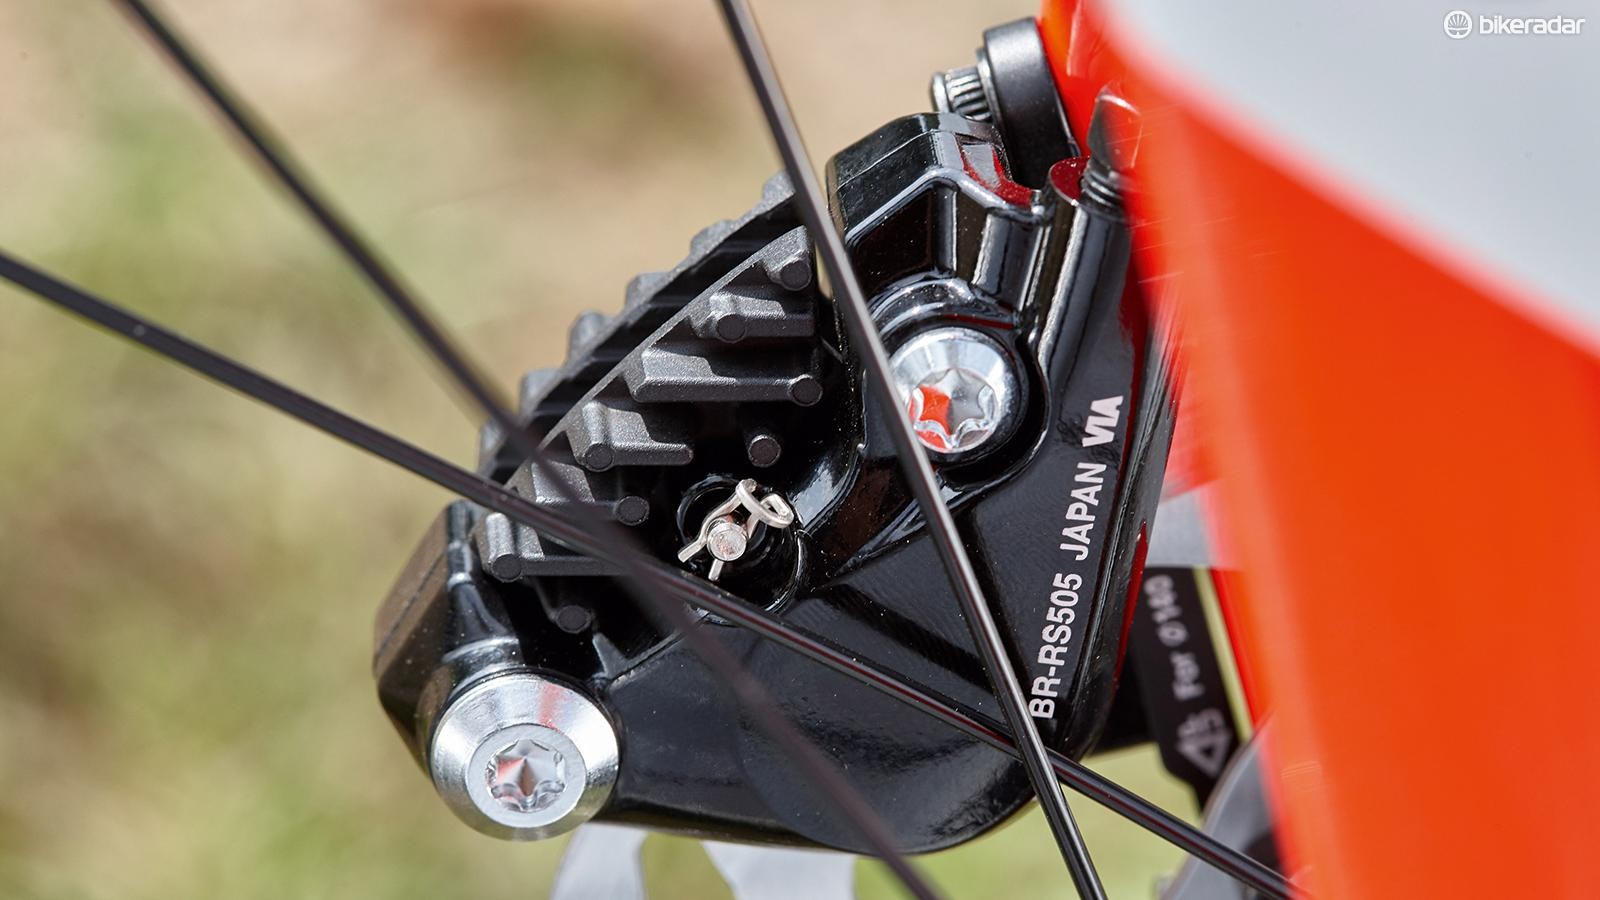 Hydraulic Shimano RS505 discs provide all-weather, all-surface stopping power